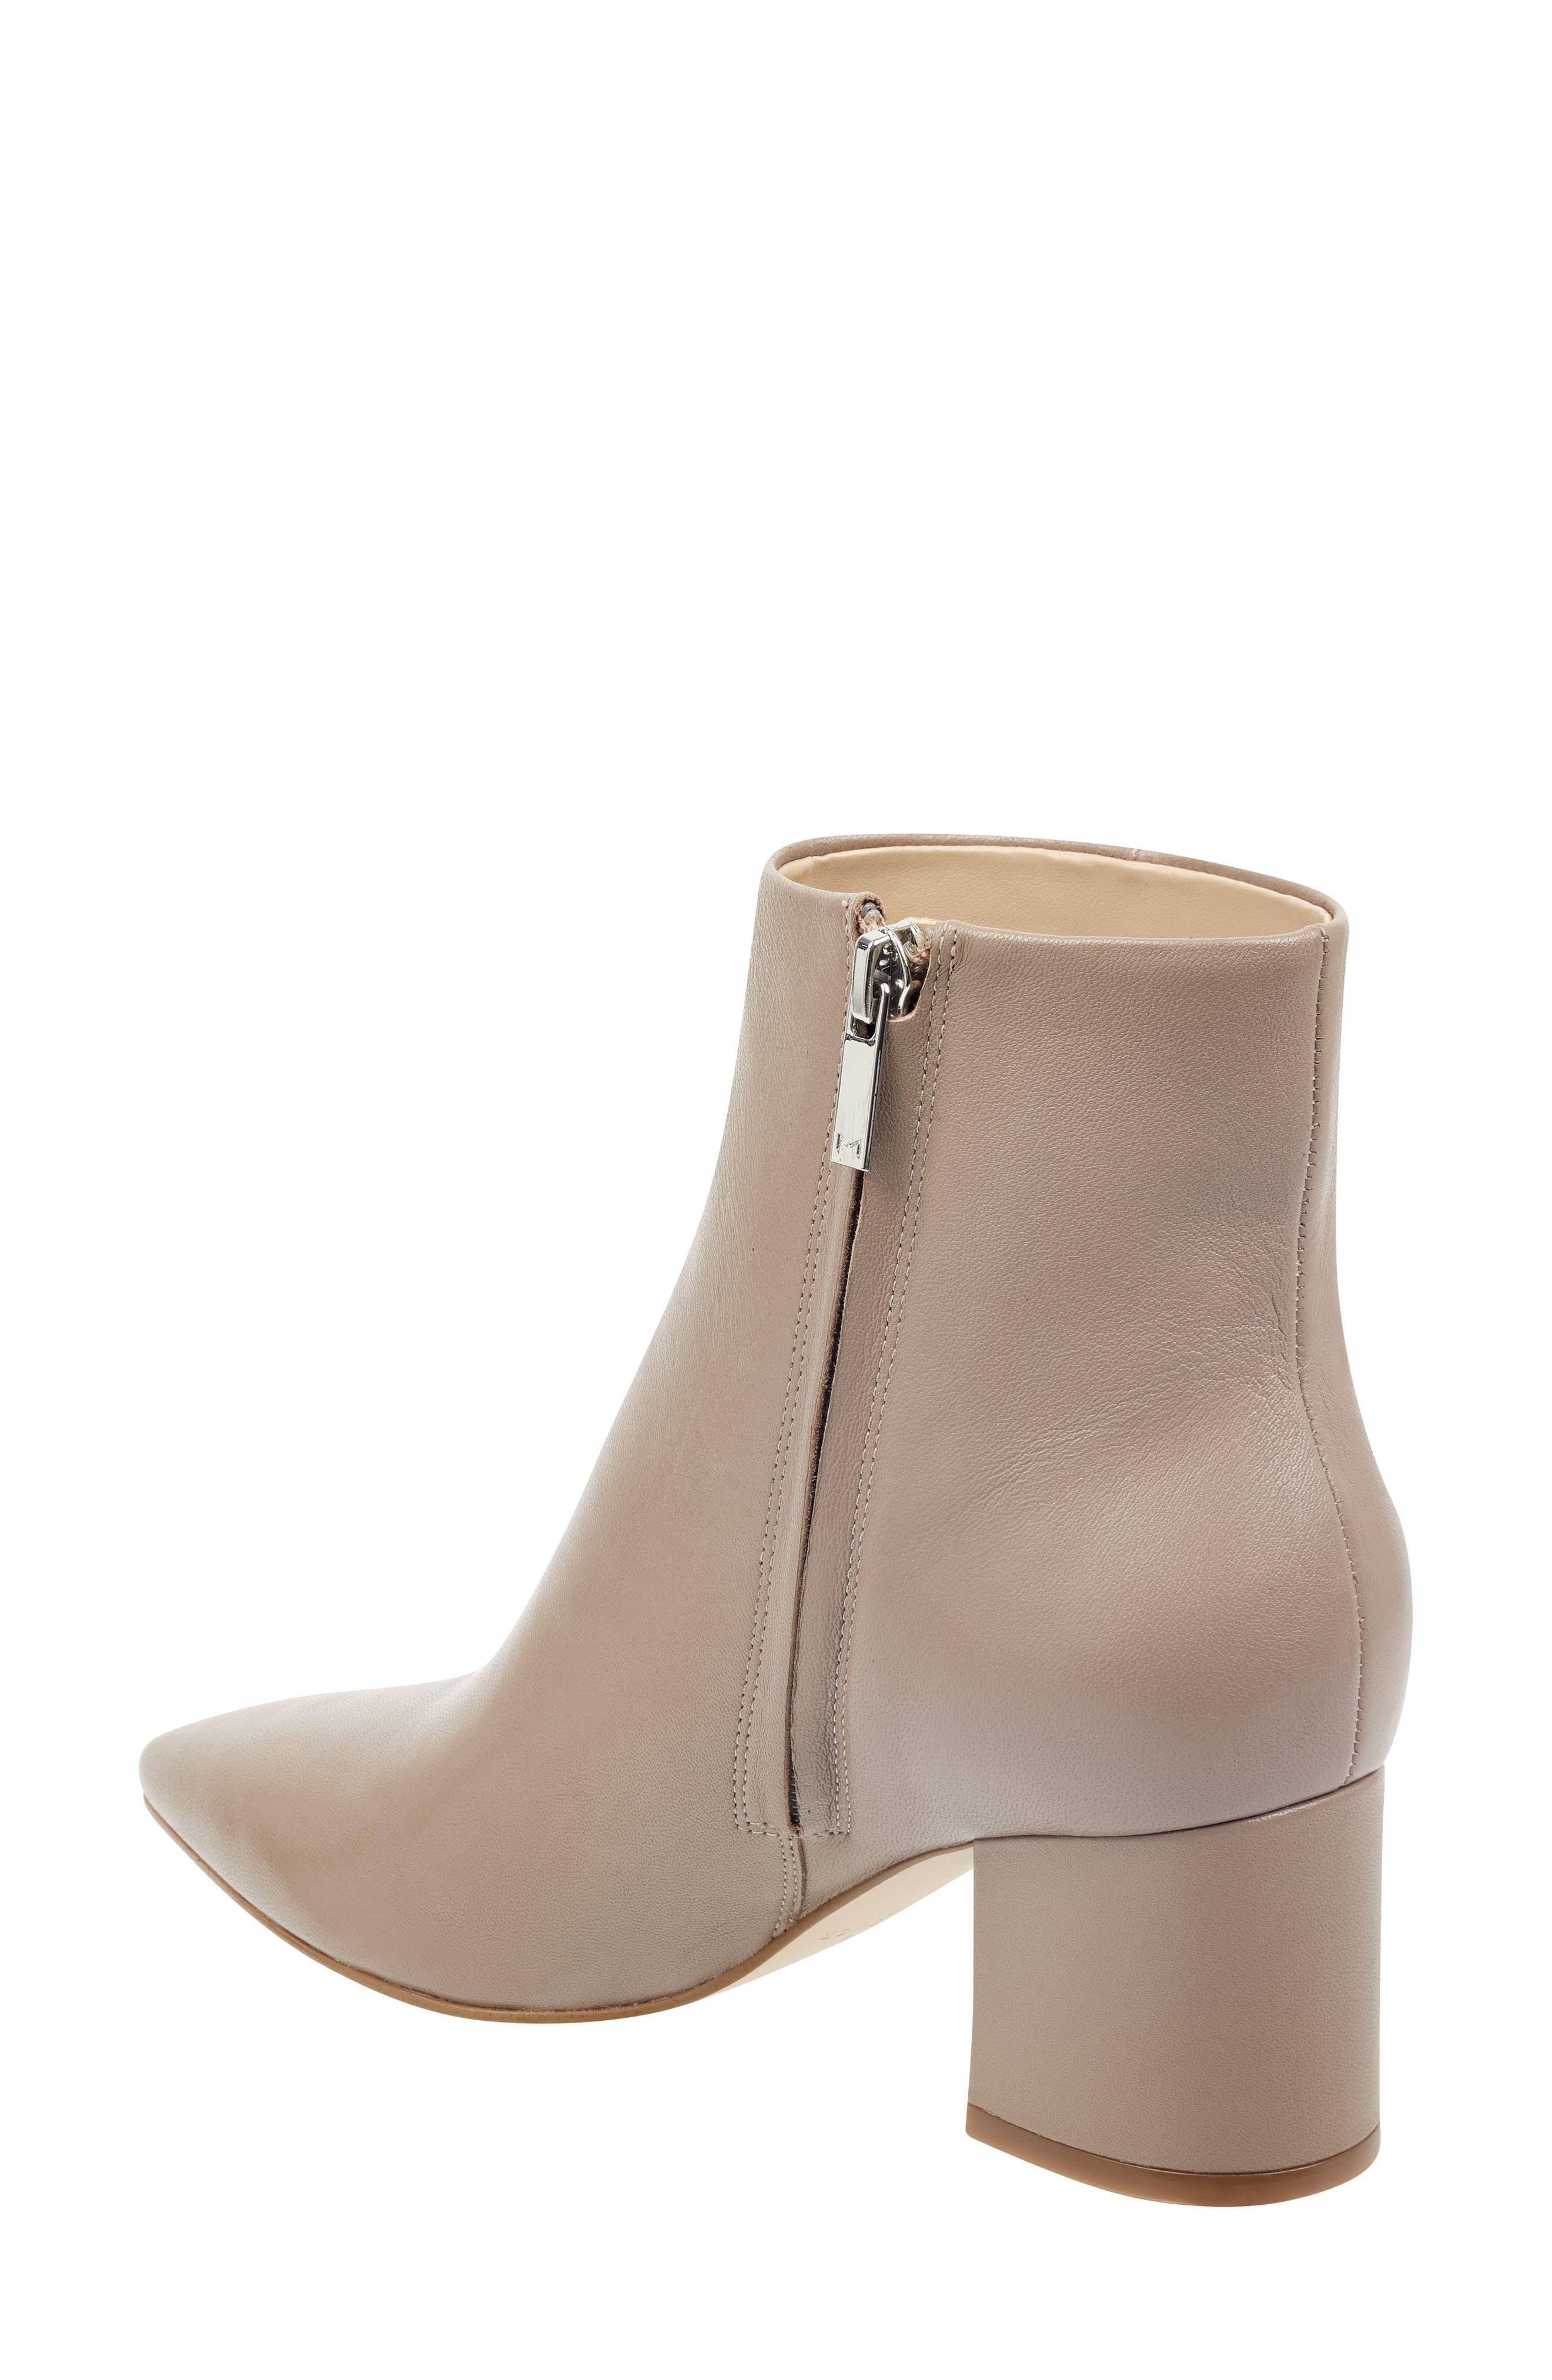 MARC FISHER LTD, Jarli Bootie, Alternate thumbnail 2, color, TAUPE LEATHER